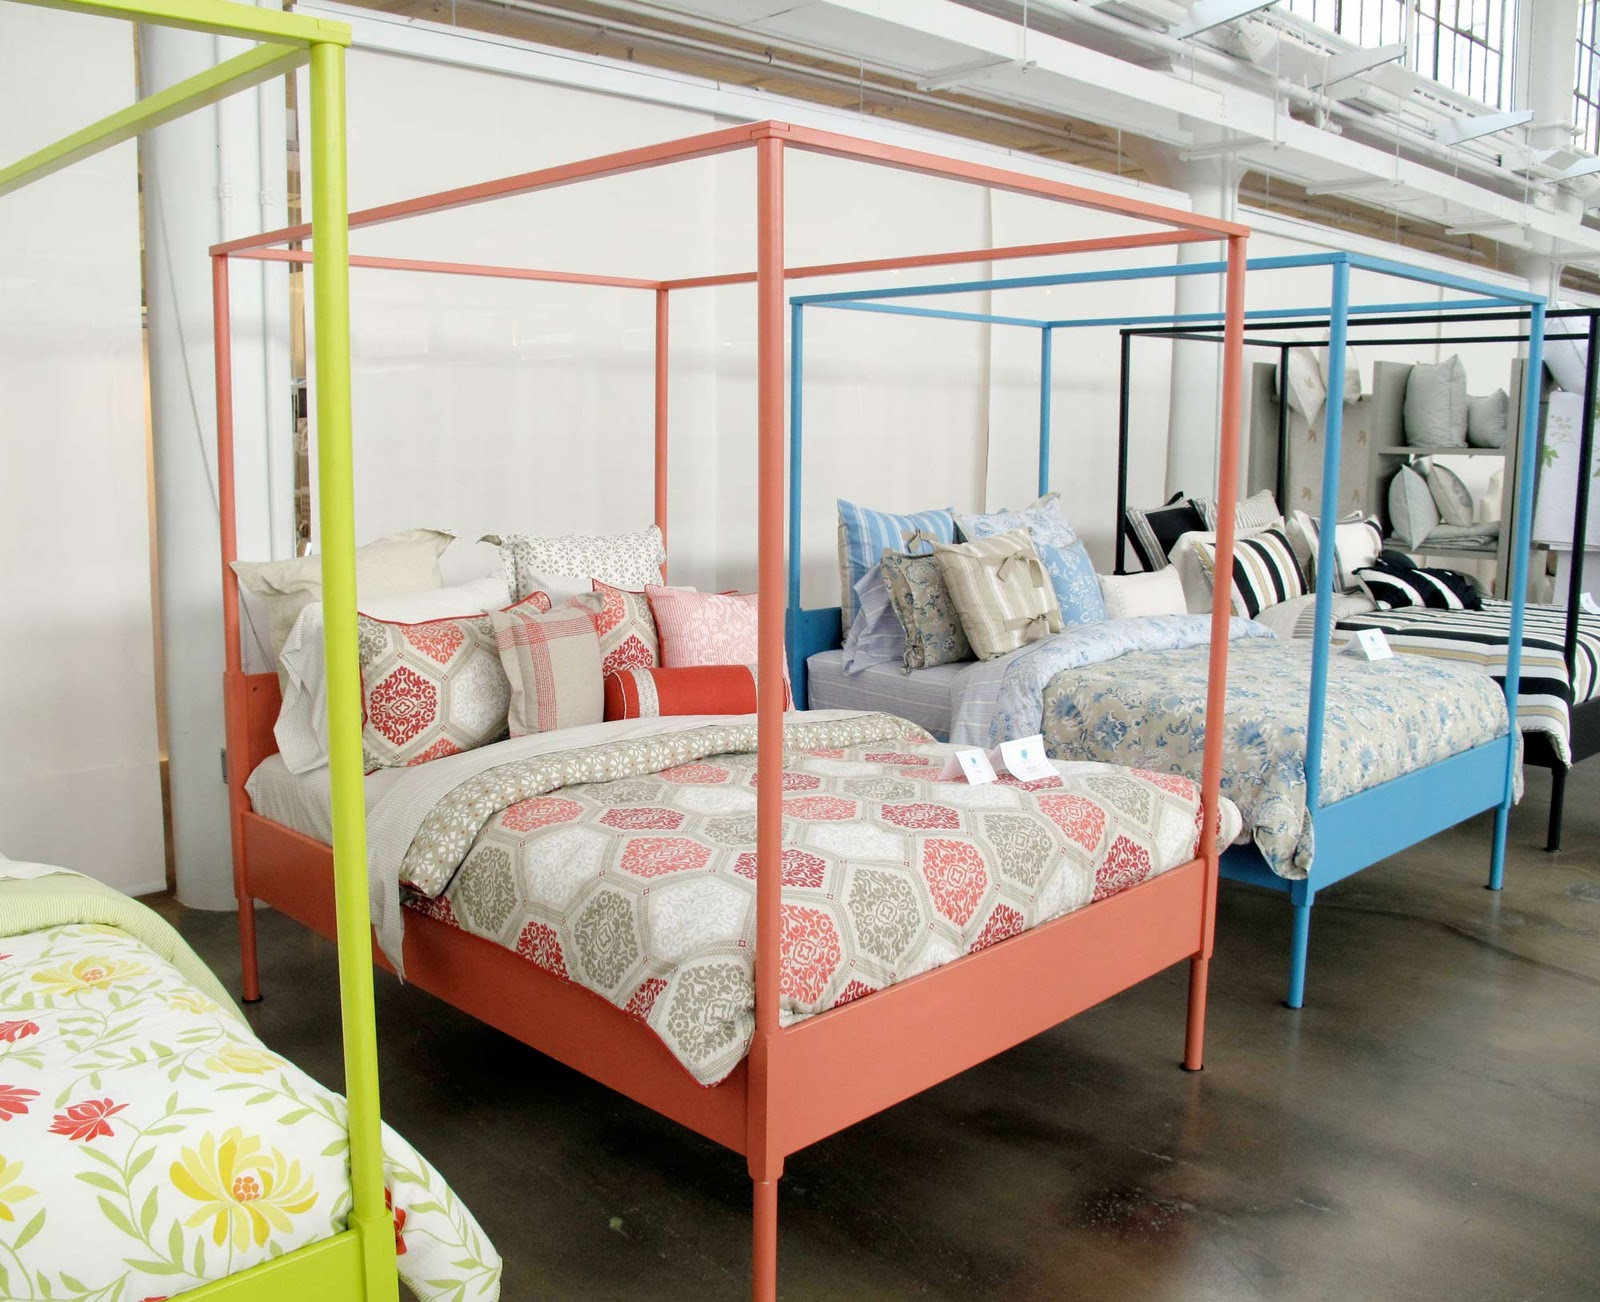 The little house in the city bright idea painted ikea beds - Bedspreads for four poster beds ...